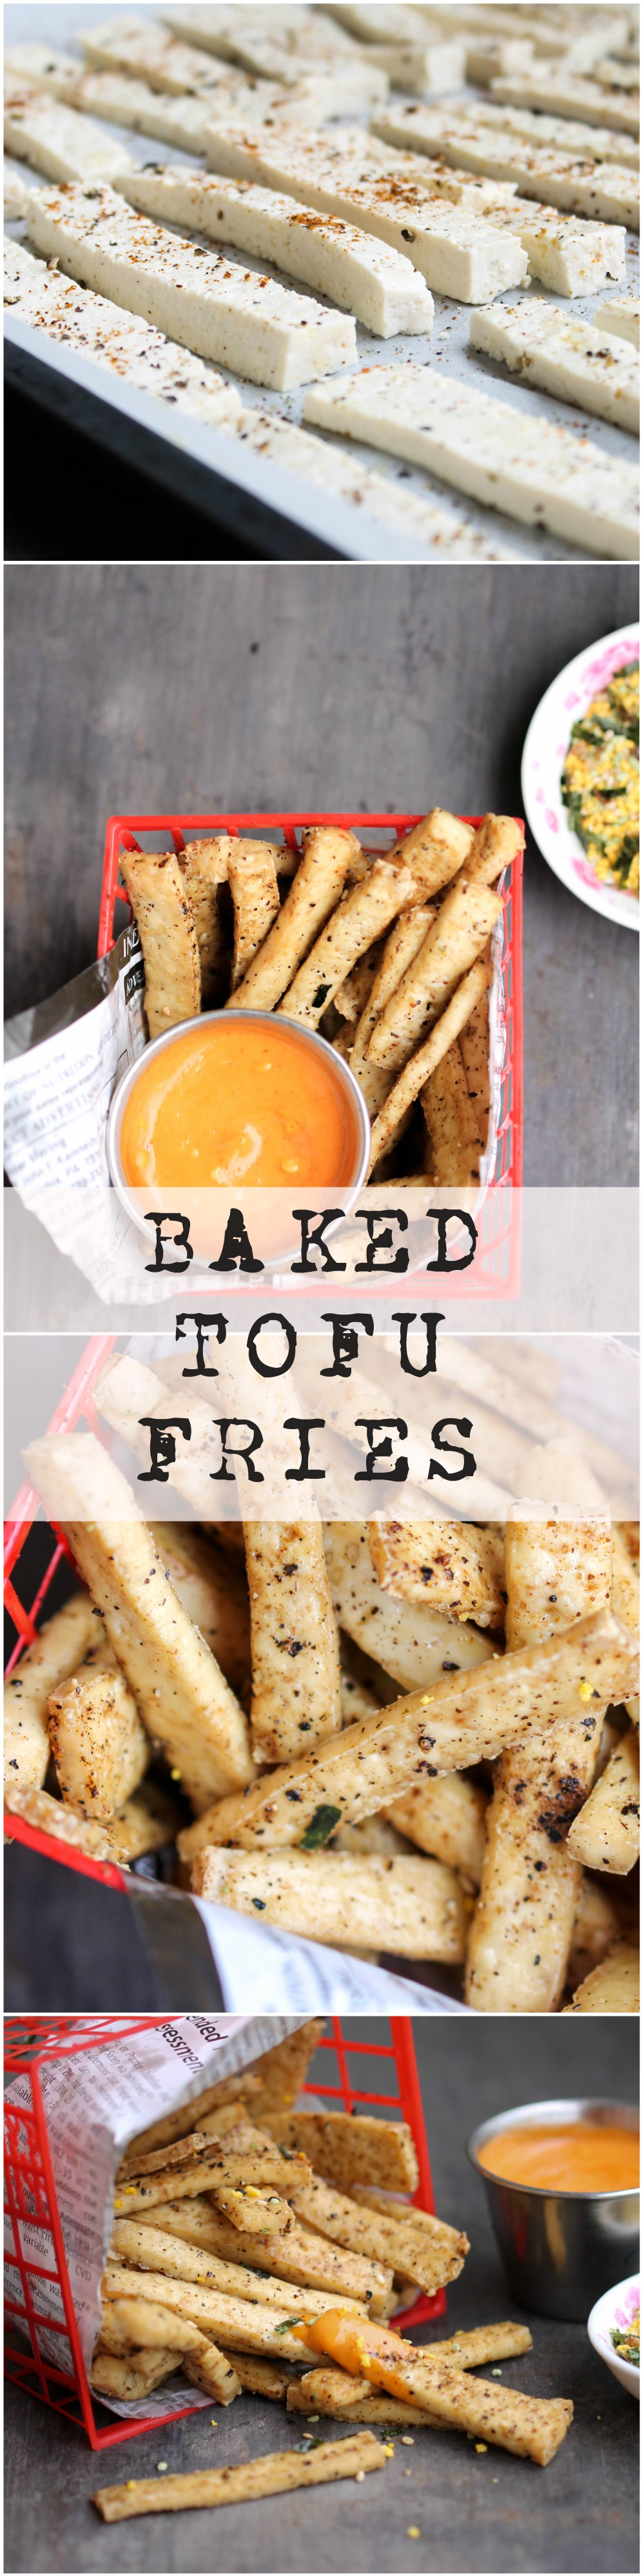 Baked Tofu Fries are naturally gluten-free, vegan, and packed with protein and many other nutrients. It's a quick, rather addictive side that you and your family can enjoy!